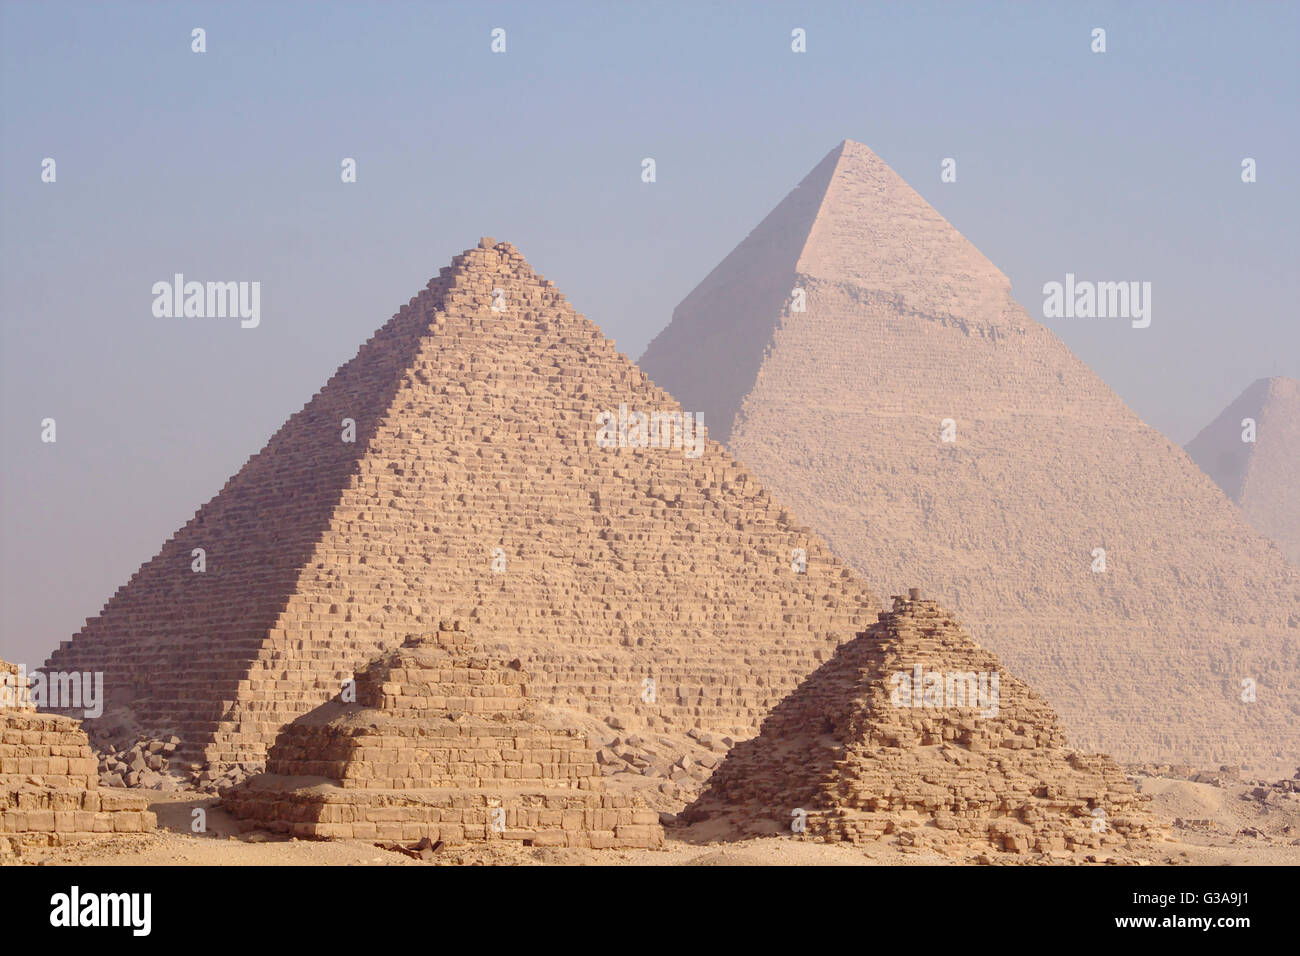 Pyramids of Giza (Queens Pyramids, Pyramid of Menkaure, Pyramid of Khafre, Pyramid of Cheops), Egypt - Stock Image